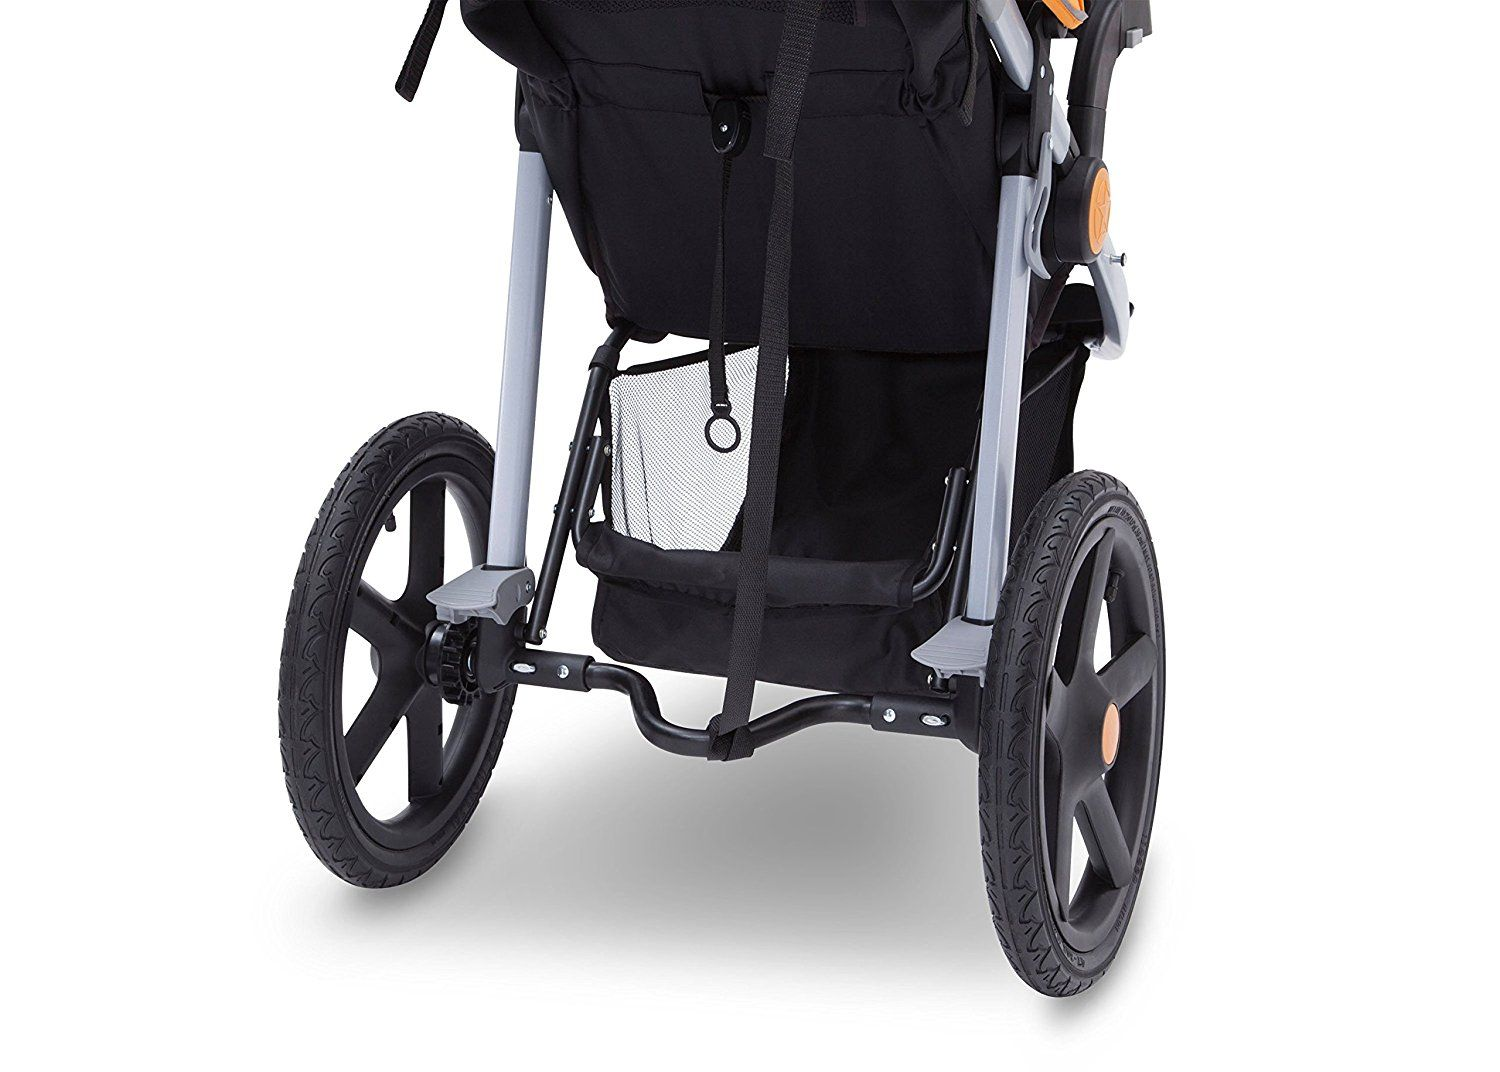 Amazon Com J Is For Jeep Brand Adventure All Terrain Jogging Stroller Galaxy Baby Http Amzn To 2tkfh0e Stroller Jogging Stroller Jeep Brand